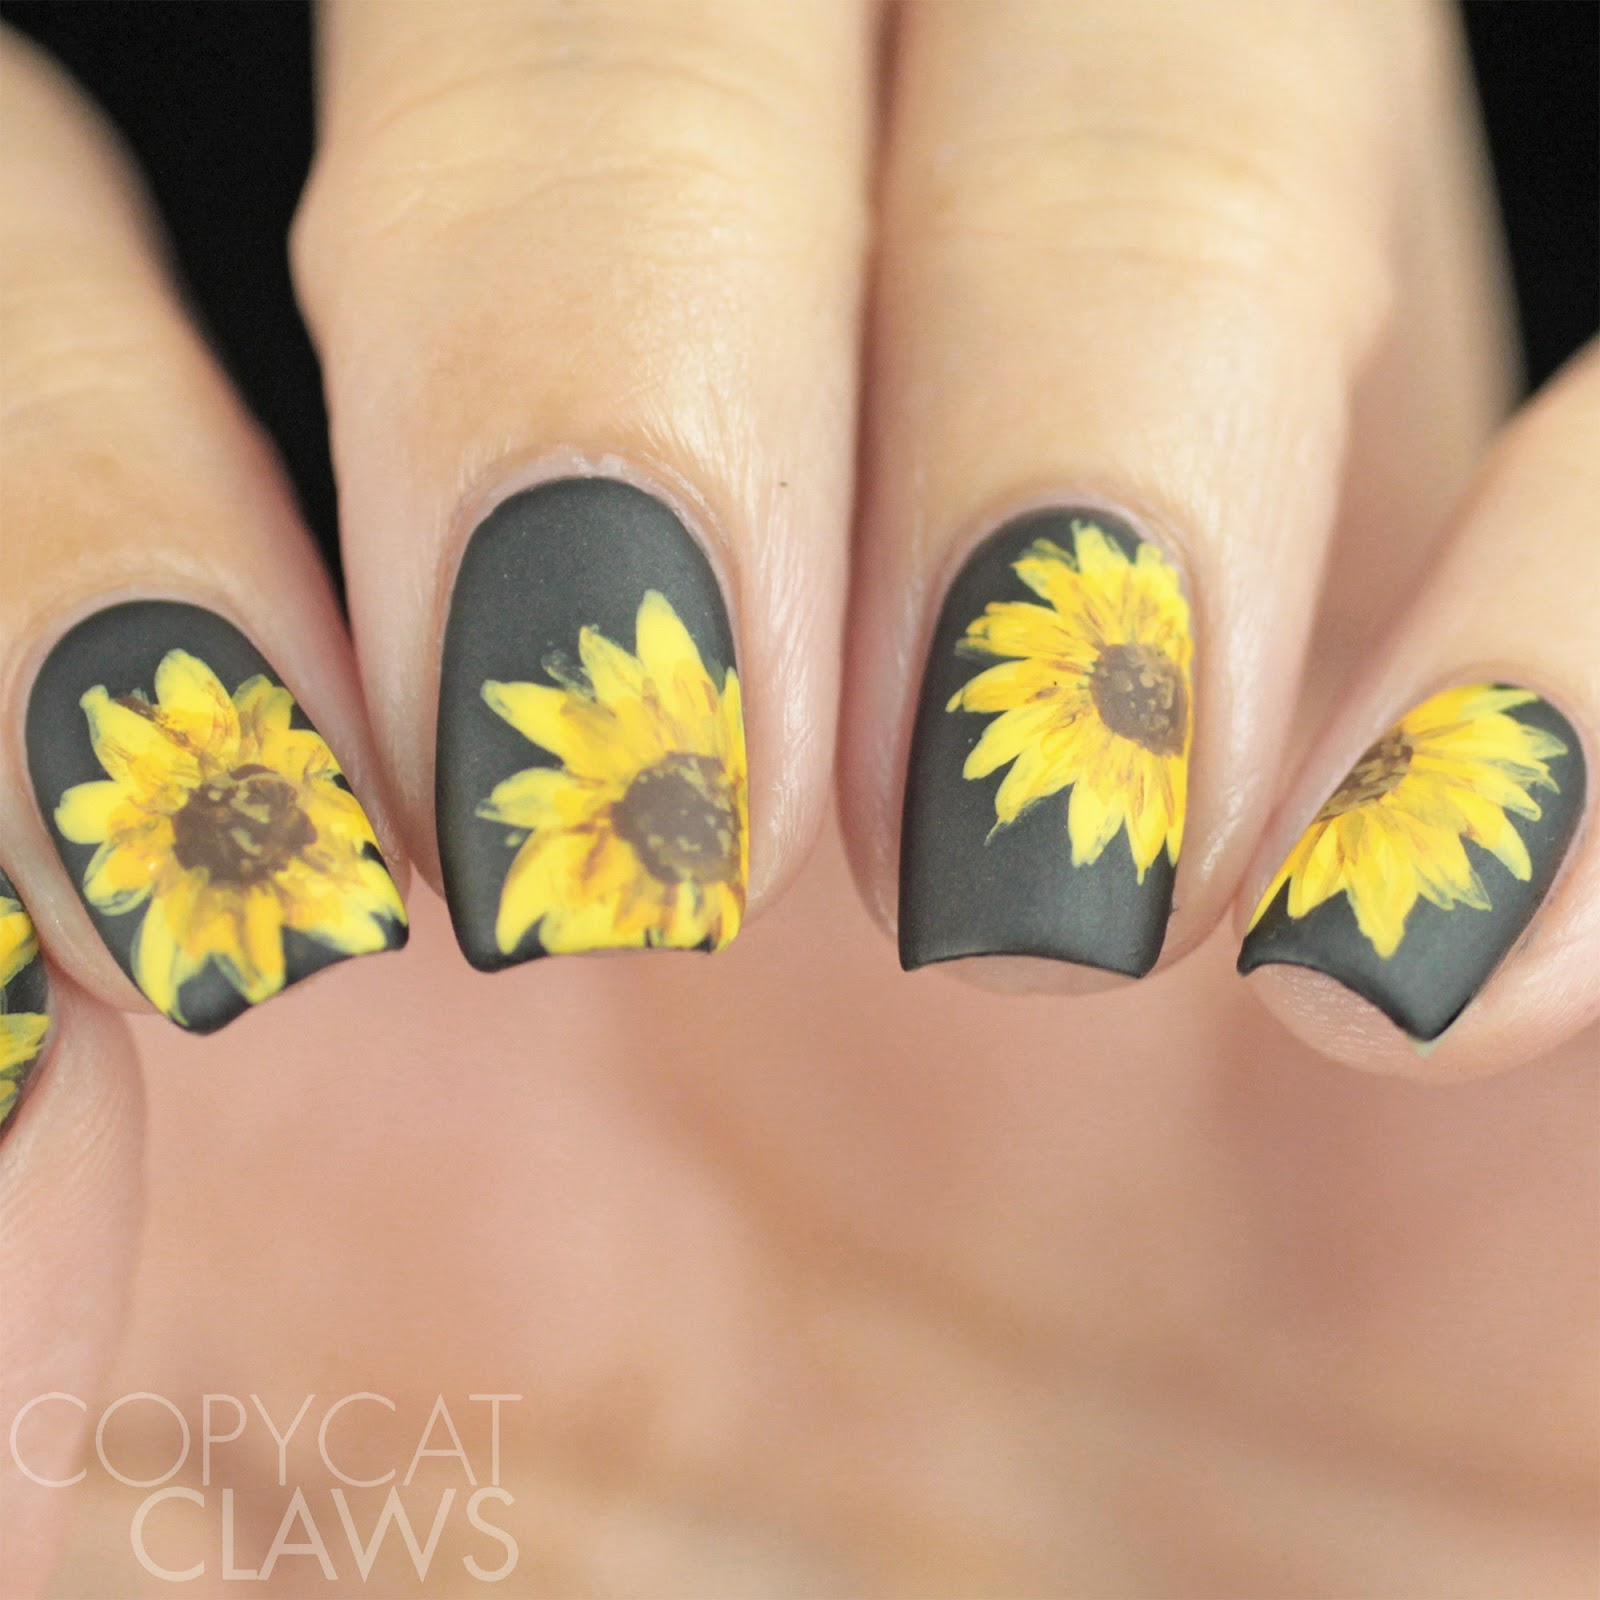 15 Cute Fall Inspired Nail Art Ideas - Style Motivation